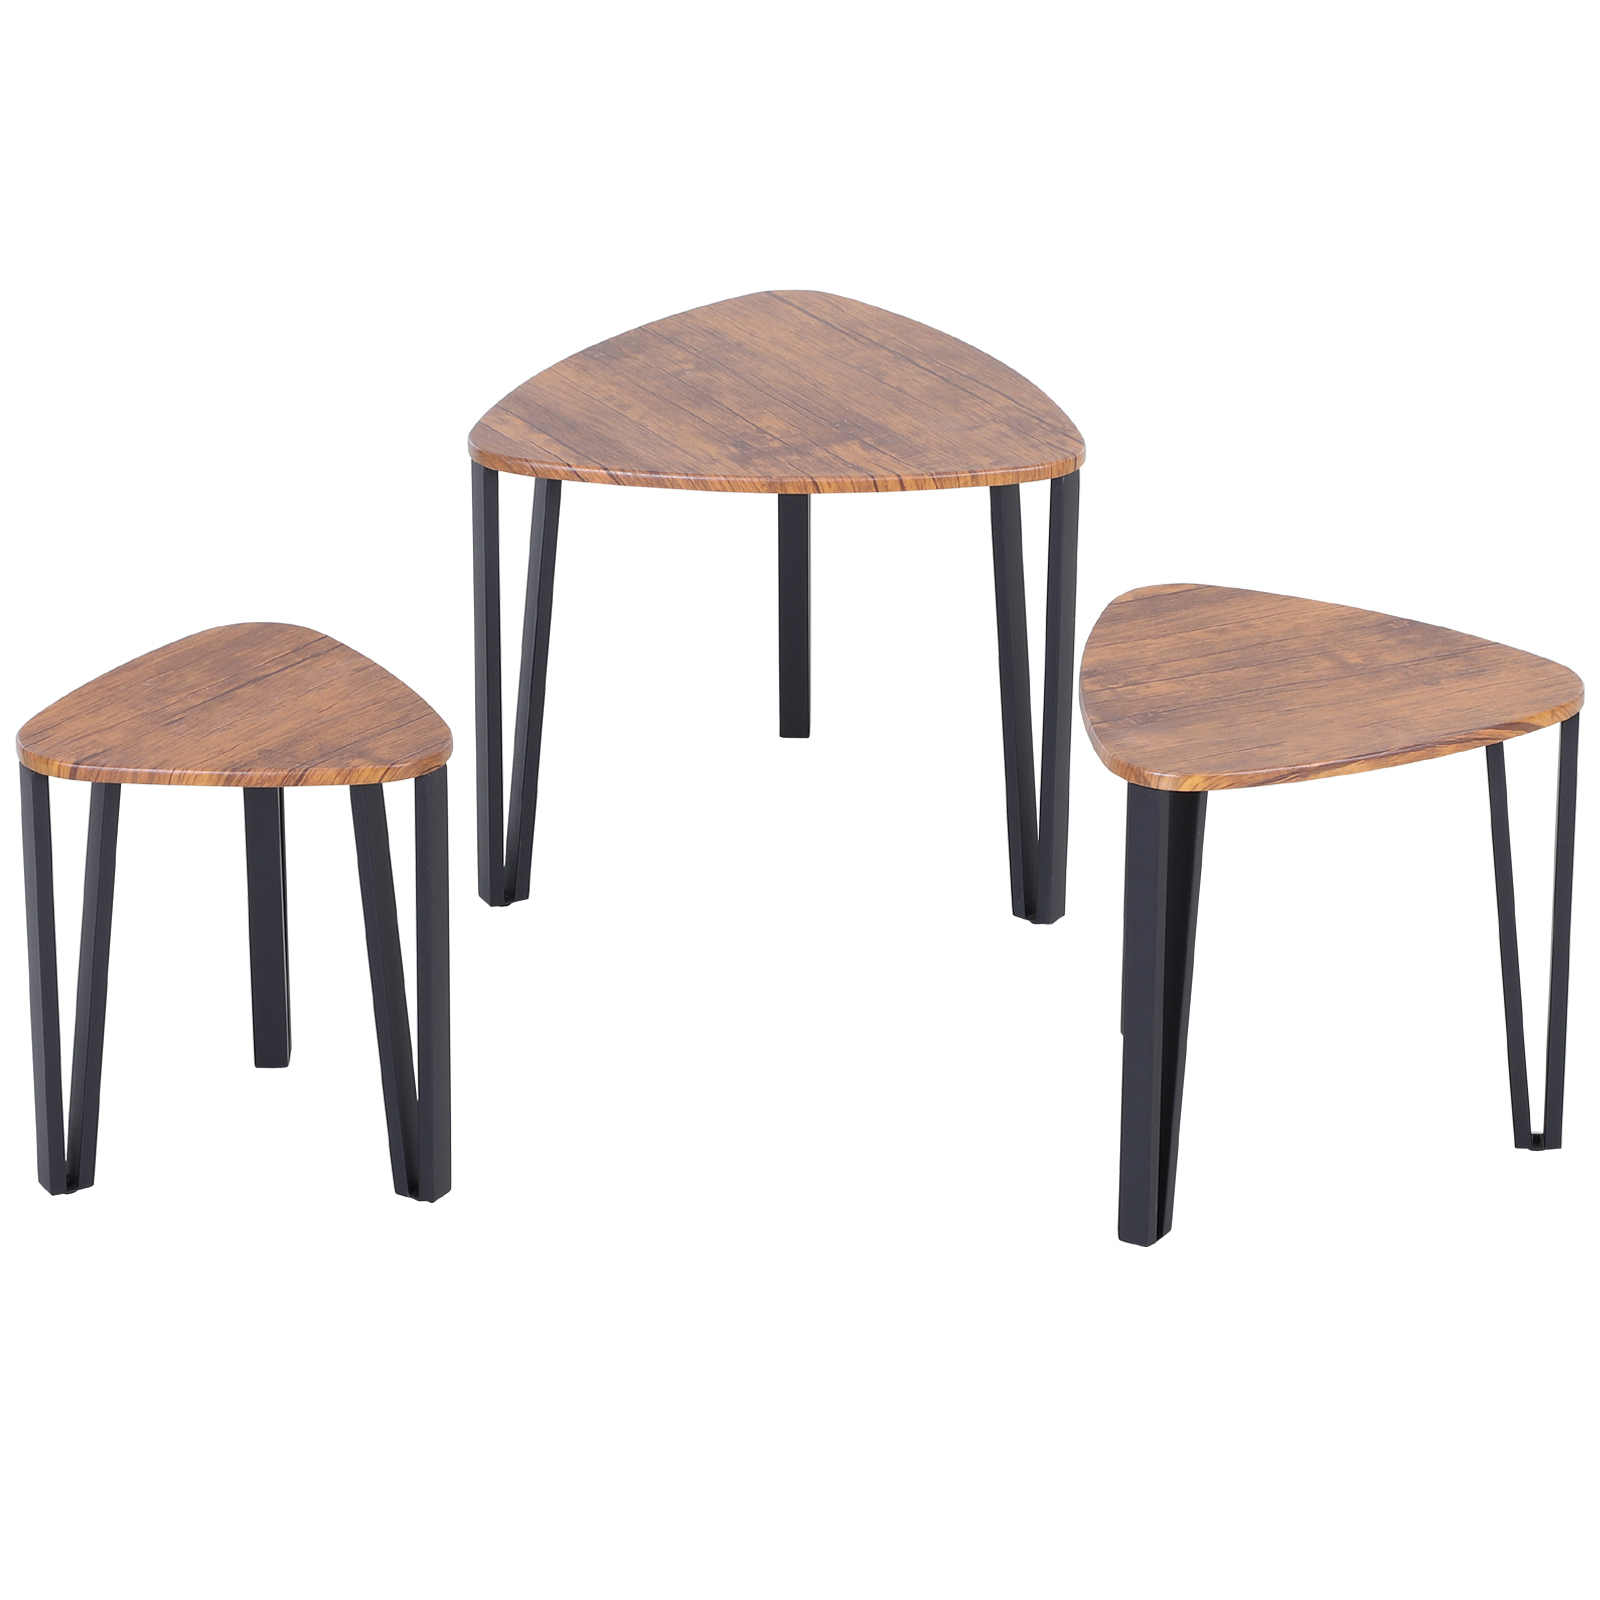 HOMCOM Set 3 Different Sizes Finish Walnut Design Coffee Tables